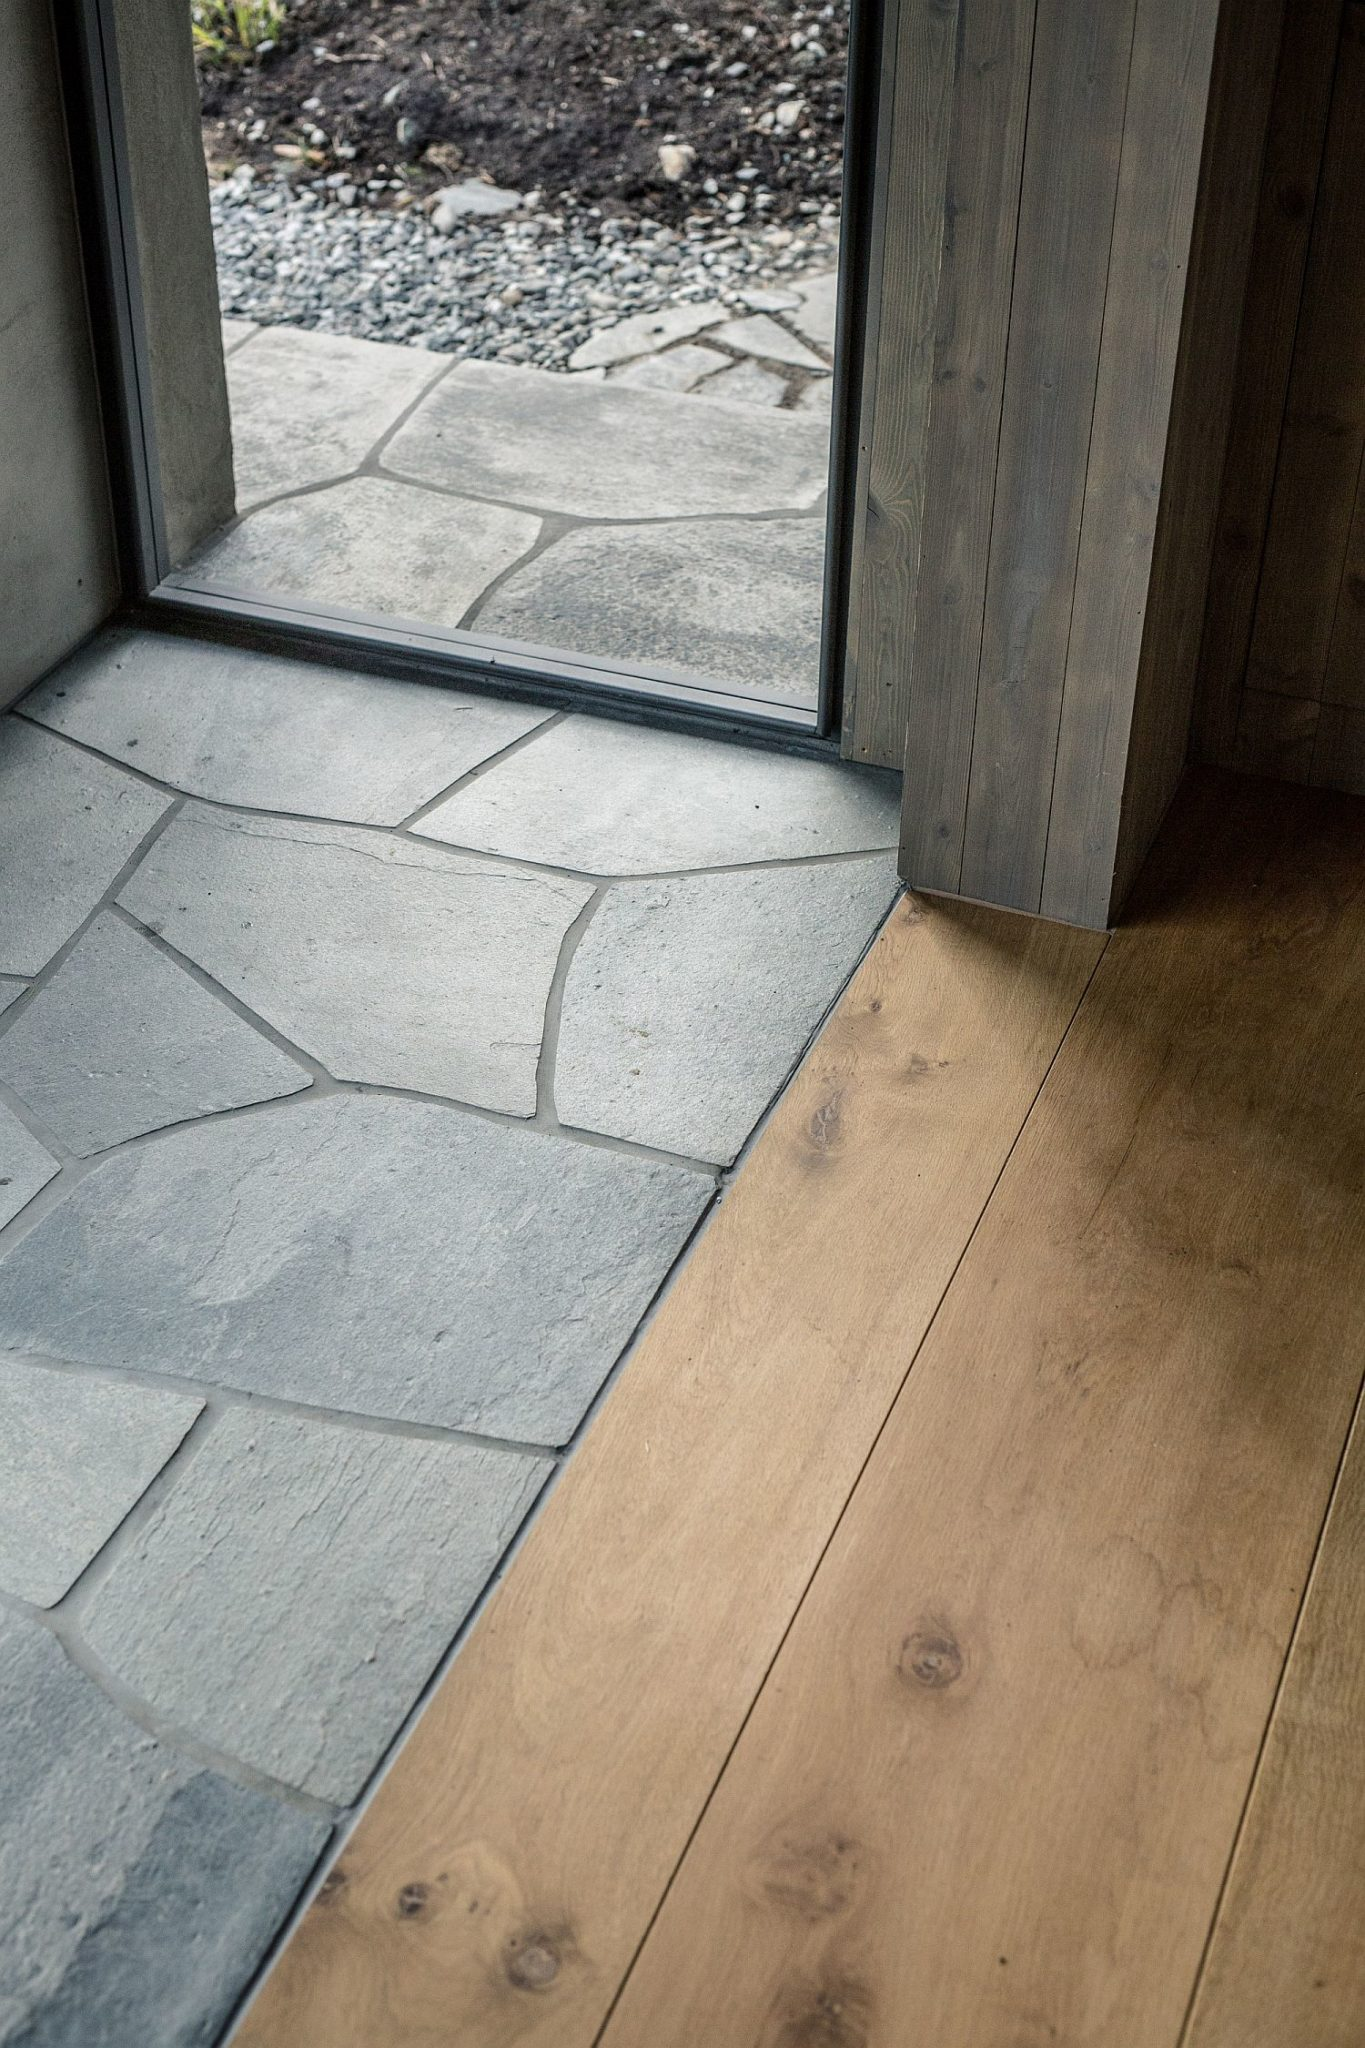 Flooring of the cabin brings together wood and stone